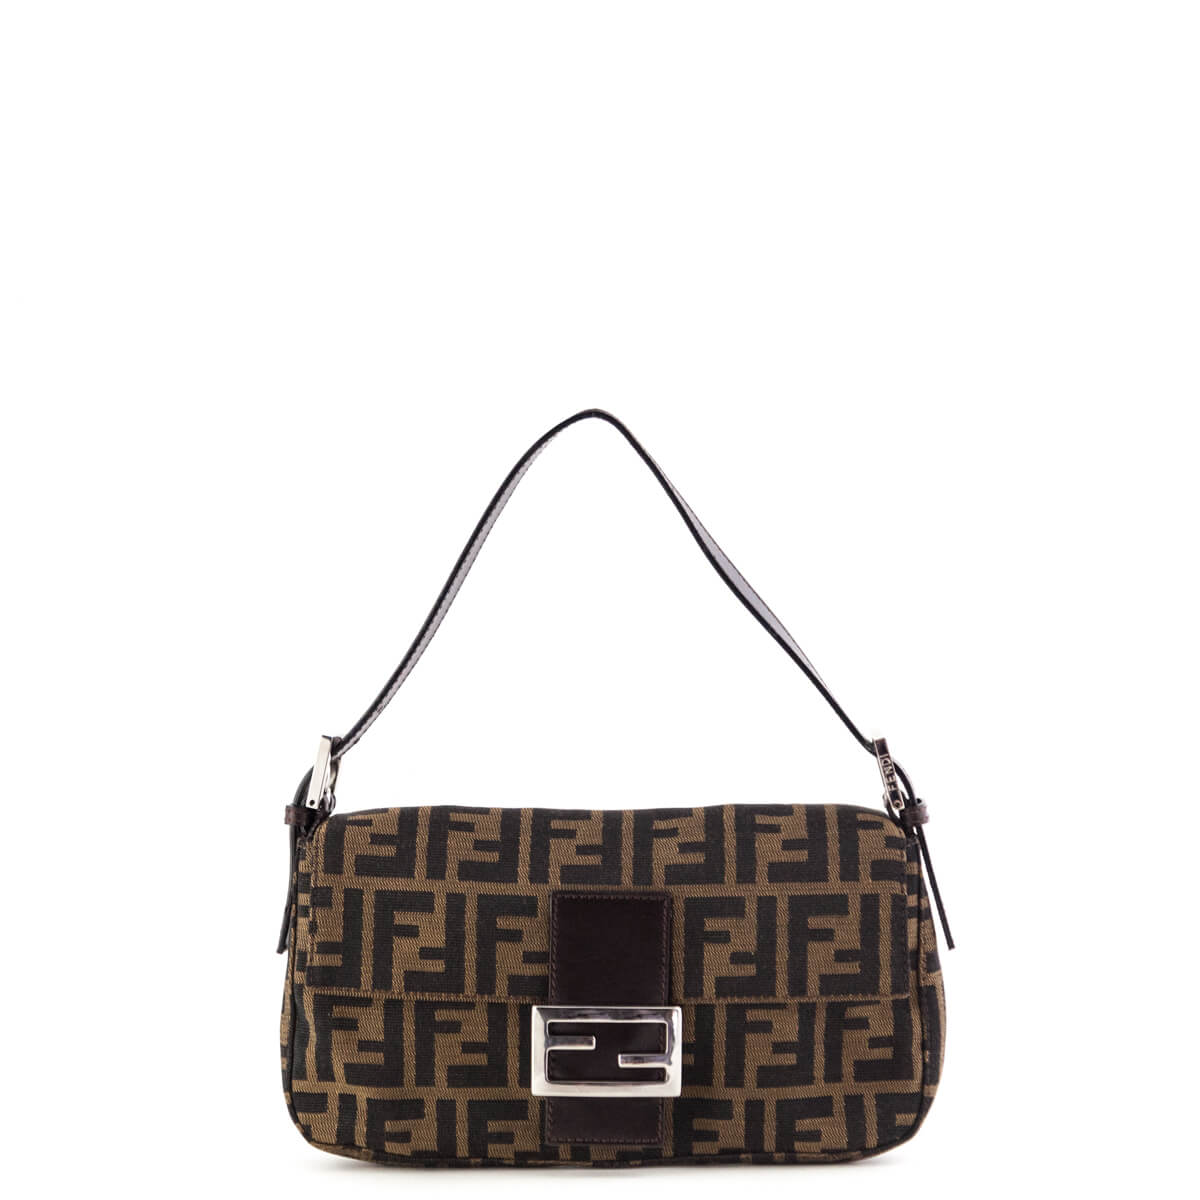 9c0ffa8b2bf7 Fendi Zucca Baguette Shoulder bag - LOVE that BAG - Preowned Authentic  Designer Handbags ...